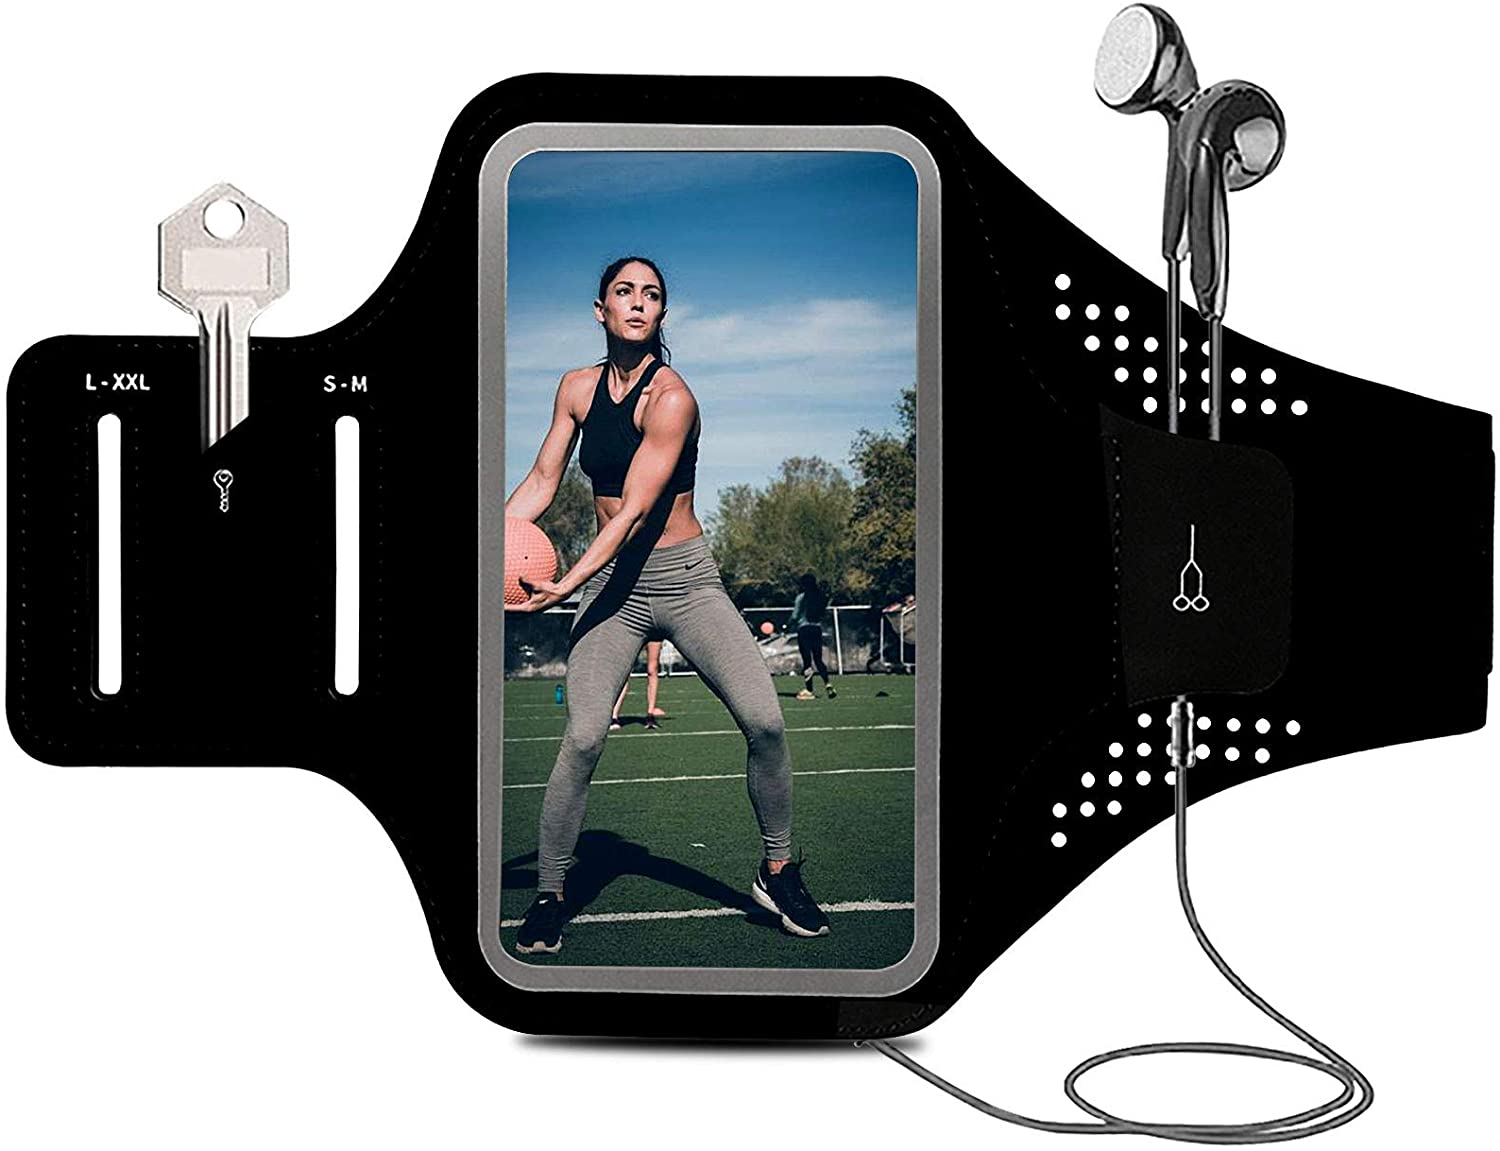 Armband for Cell Phone Running Armband Phone Holder for iPhone Armband 11 12 Pro Max X XR XS Max 10 8 7 6s Plus SE Smartphone ID,Phone Armband Sleeve Fit Sport Exercise Workout Fitness Black Arm Band